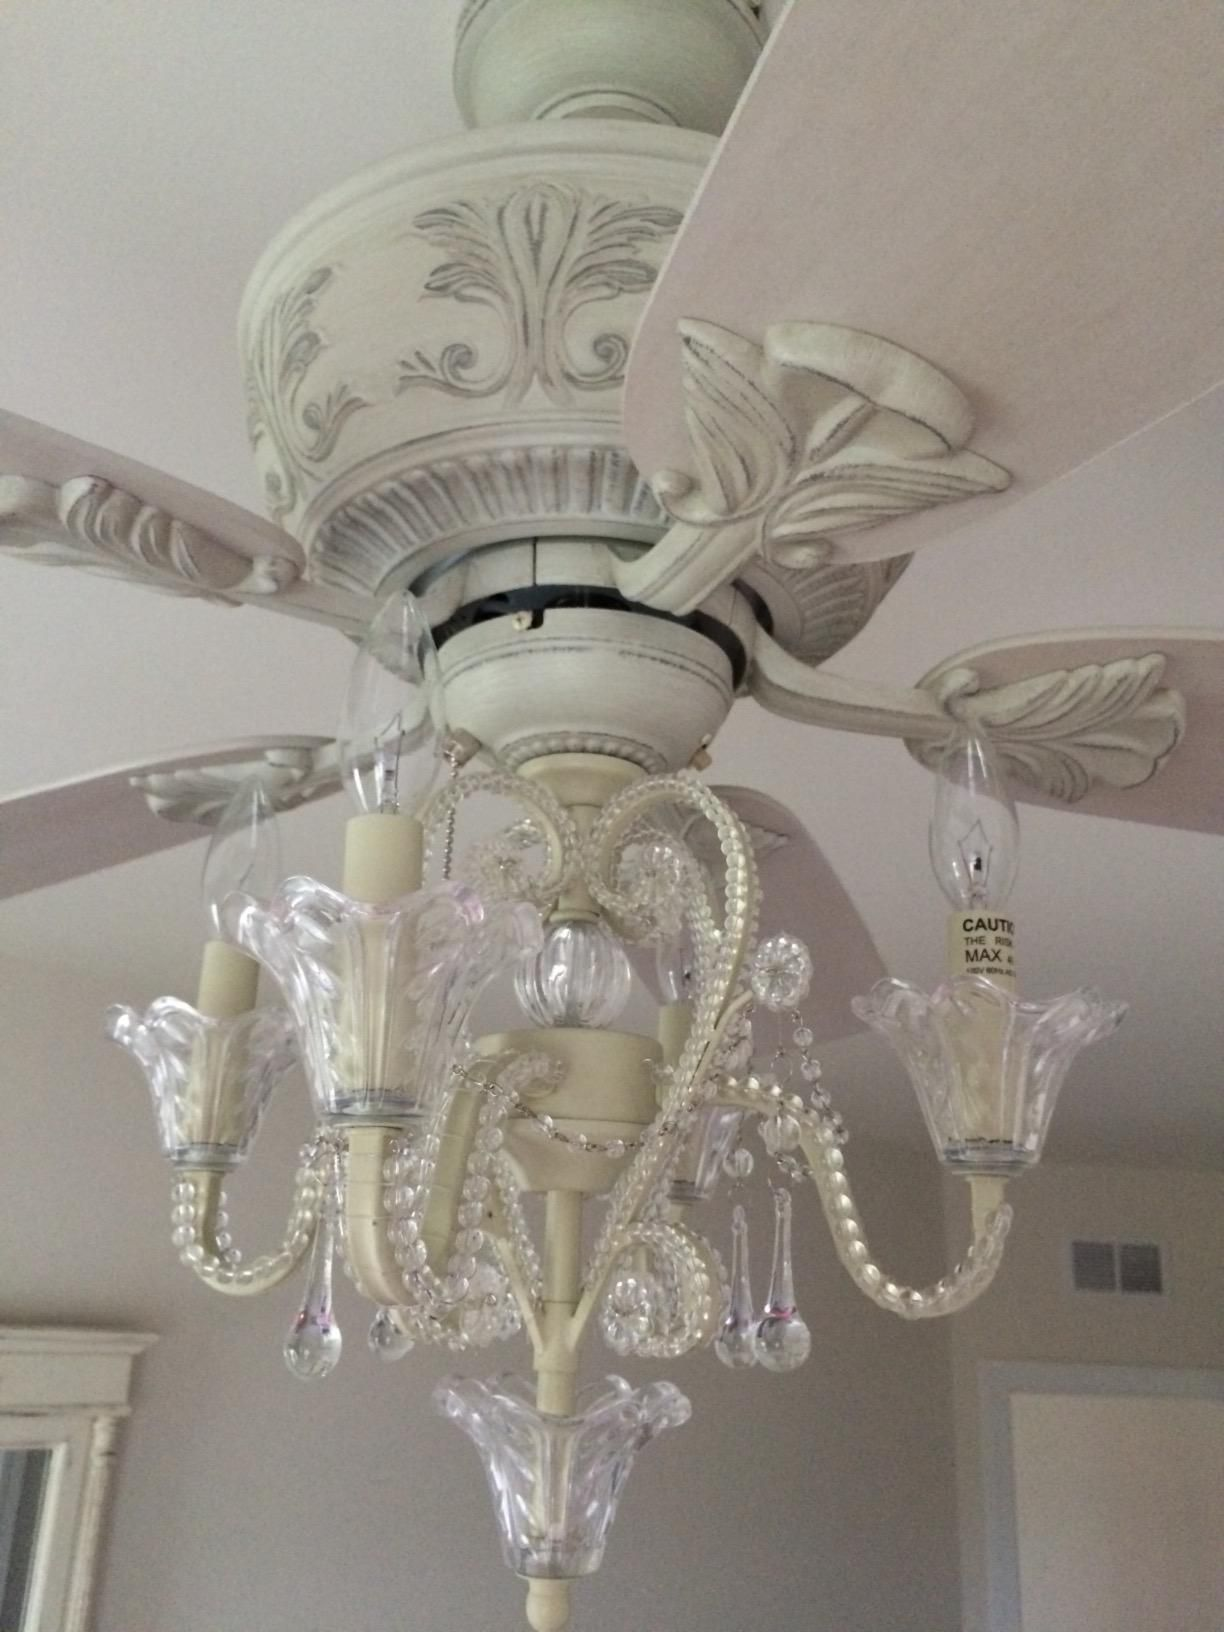 Antique White Ceiling Fan With Chandelier Amazon Crystal Bead Candelabra Antique White Ceiling